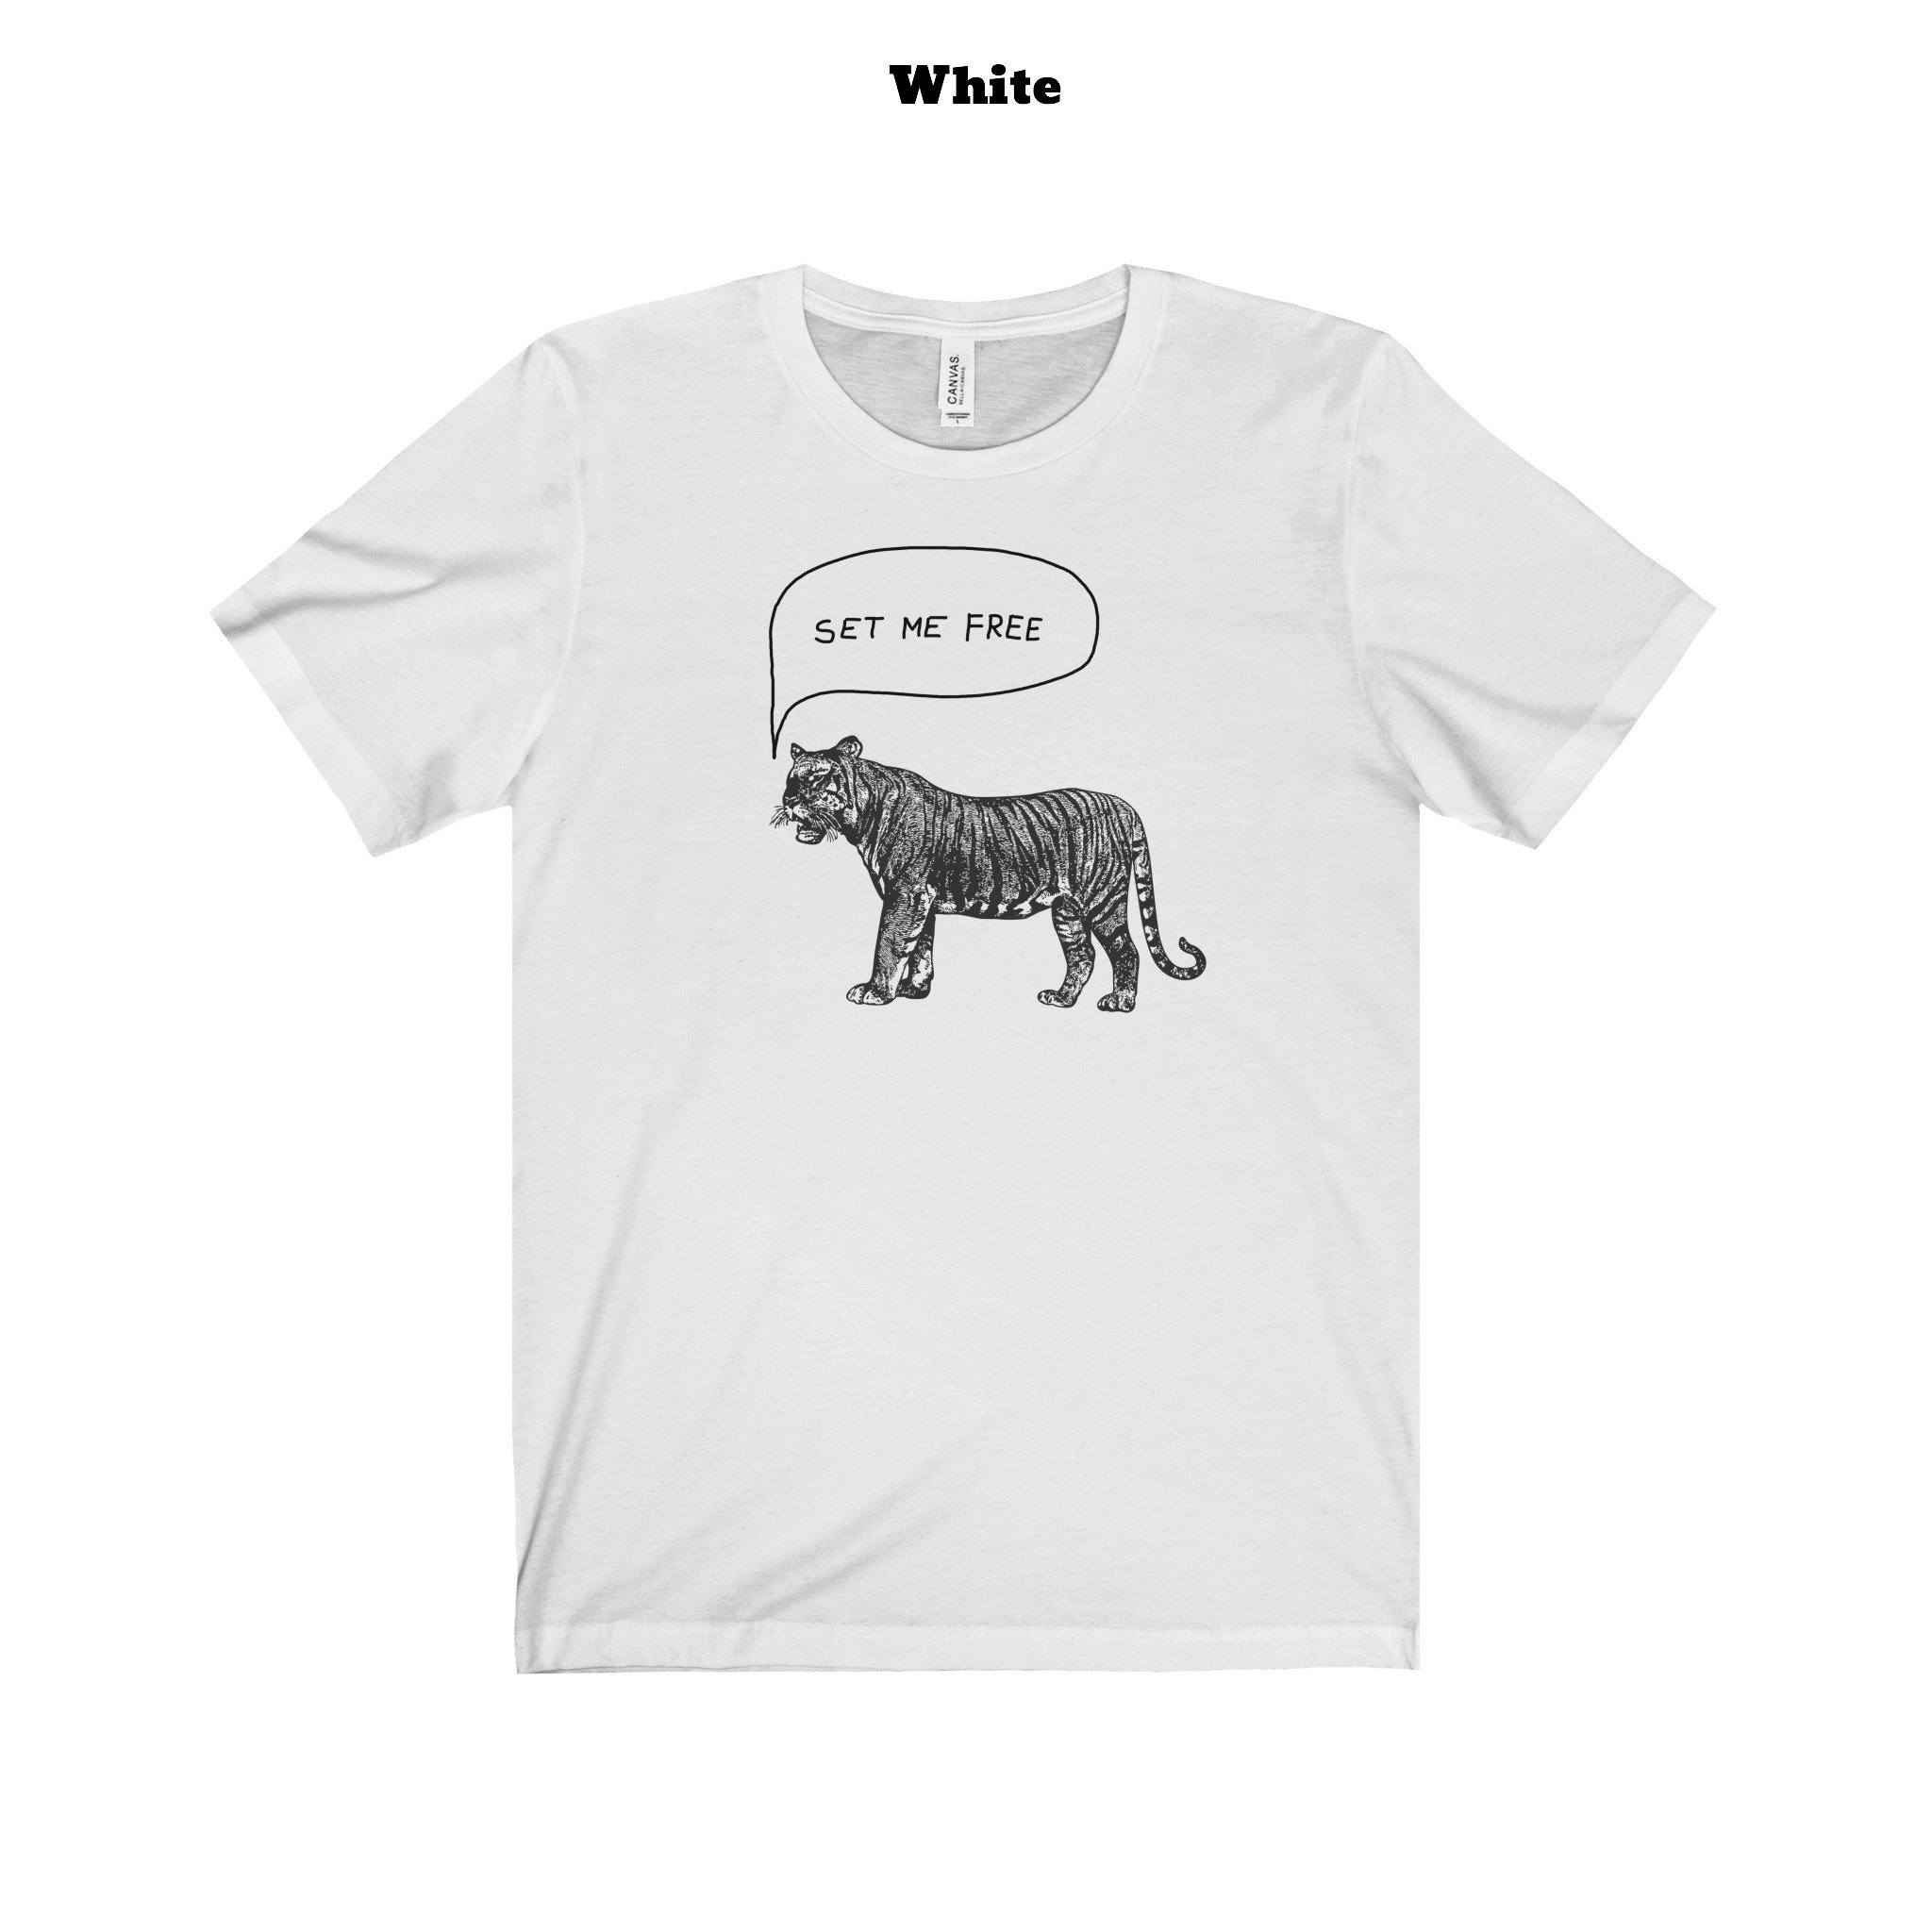 Free the tiger T-shirt (+14 Colors)-TheGretest